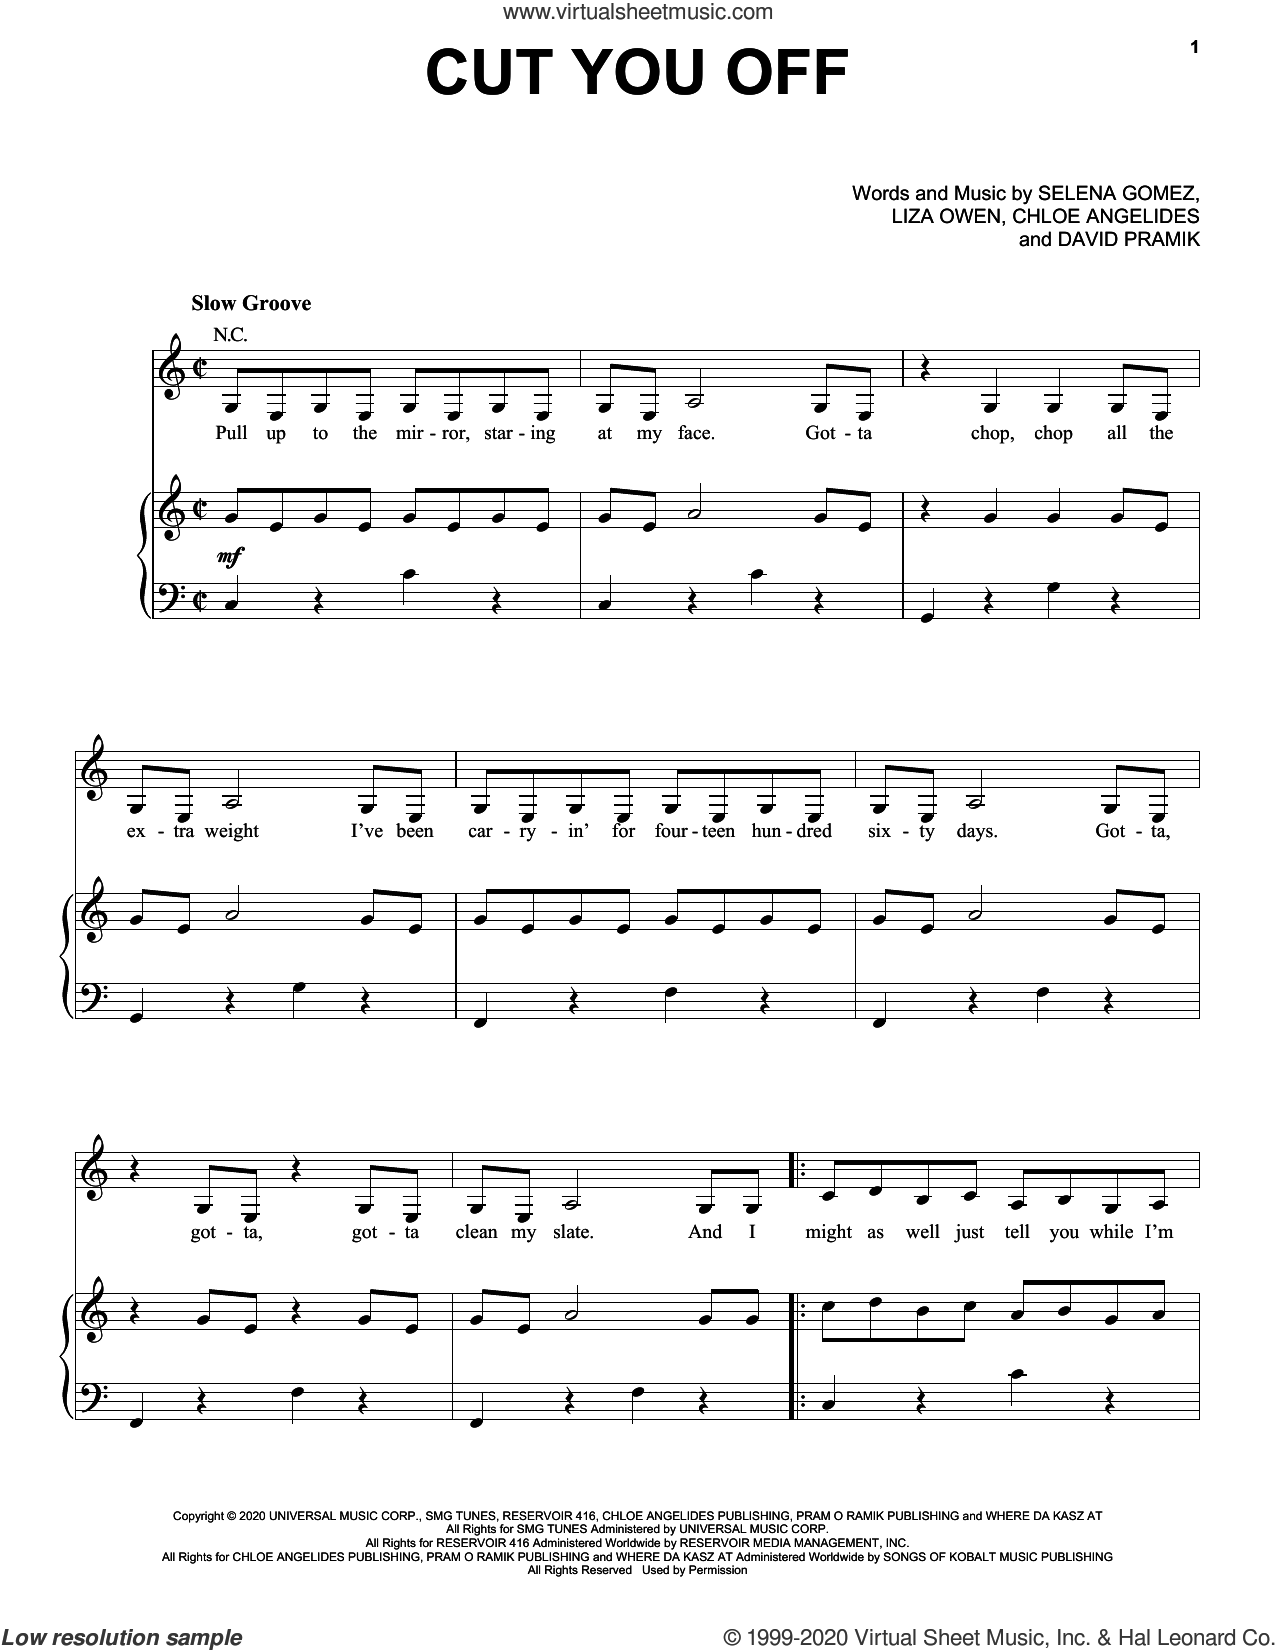 Cut You Off sheet music for voice, piano or guitar by Selena Gomez, Chloe Angelides, David Pramik and Liza Owen, intermediate skill level